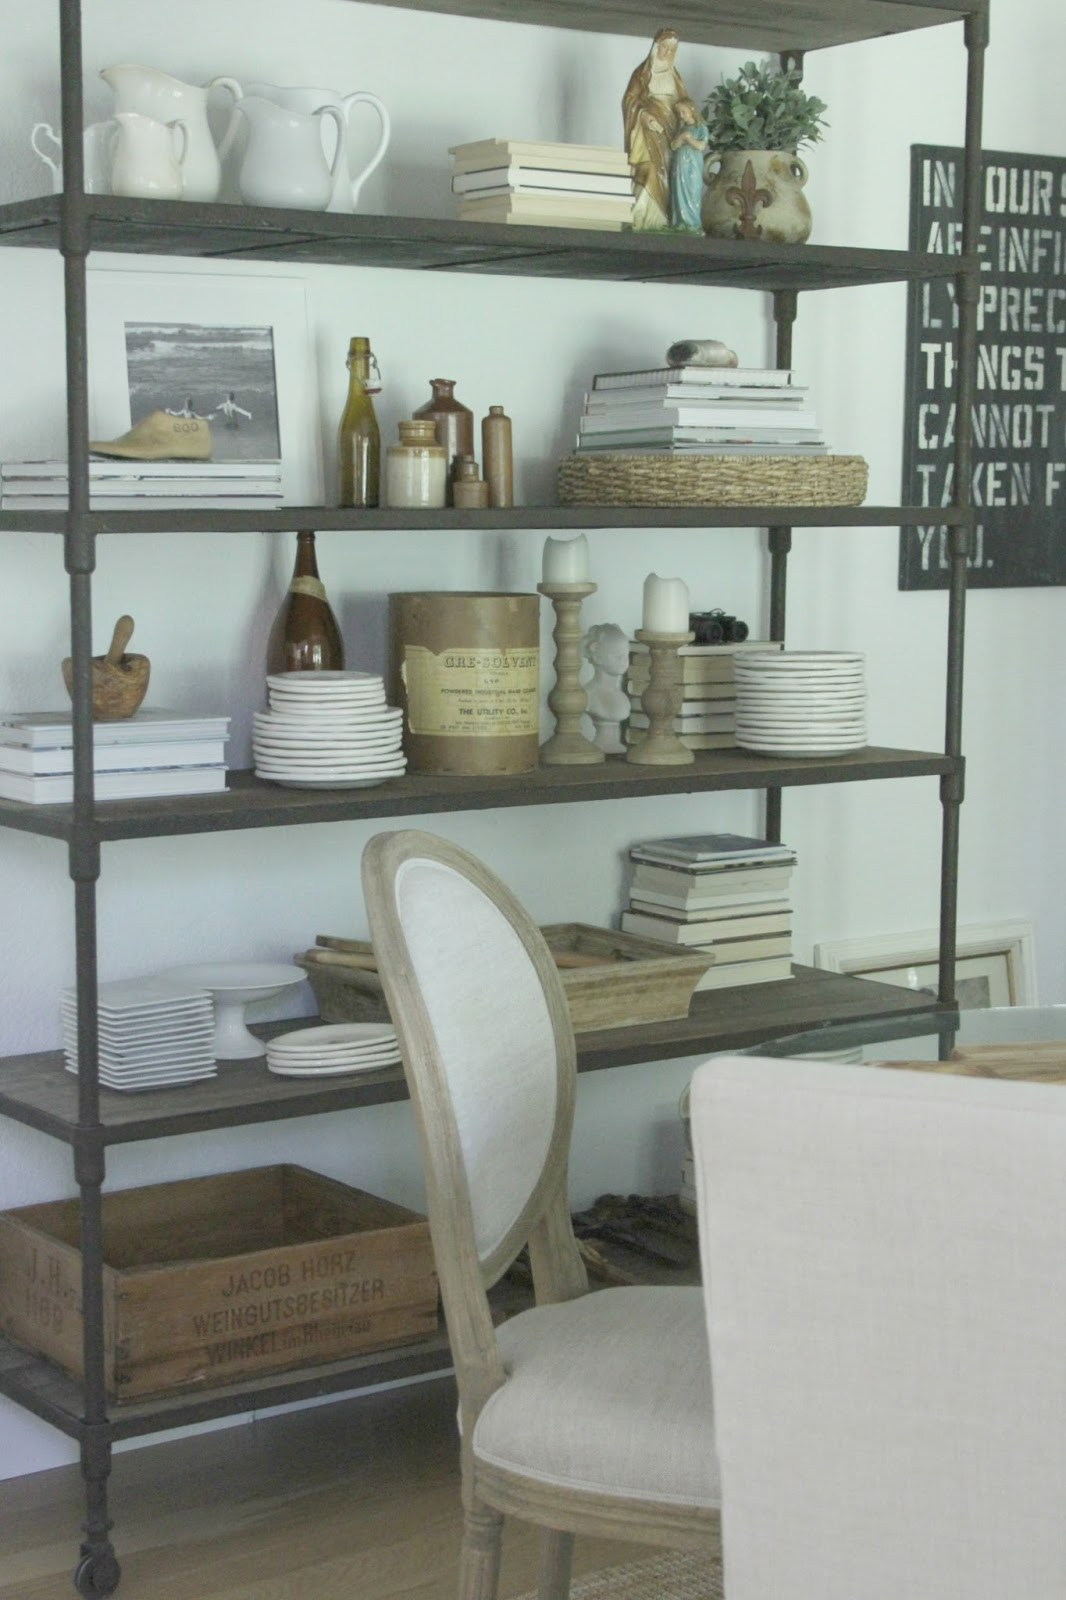 Rustic decor and vintage treasures on reclaimed wood shelves in dining room. #belgianstyle #etagere #diningroom #belgianlinen